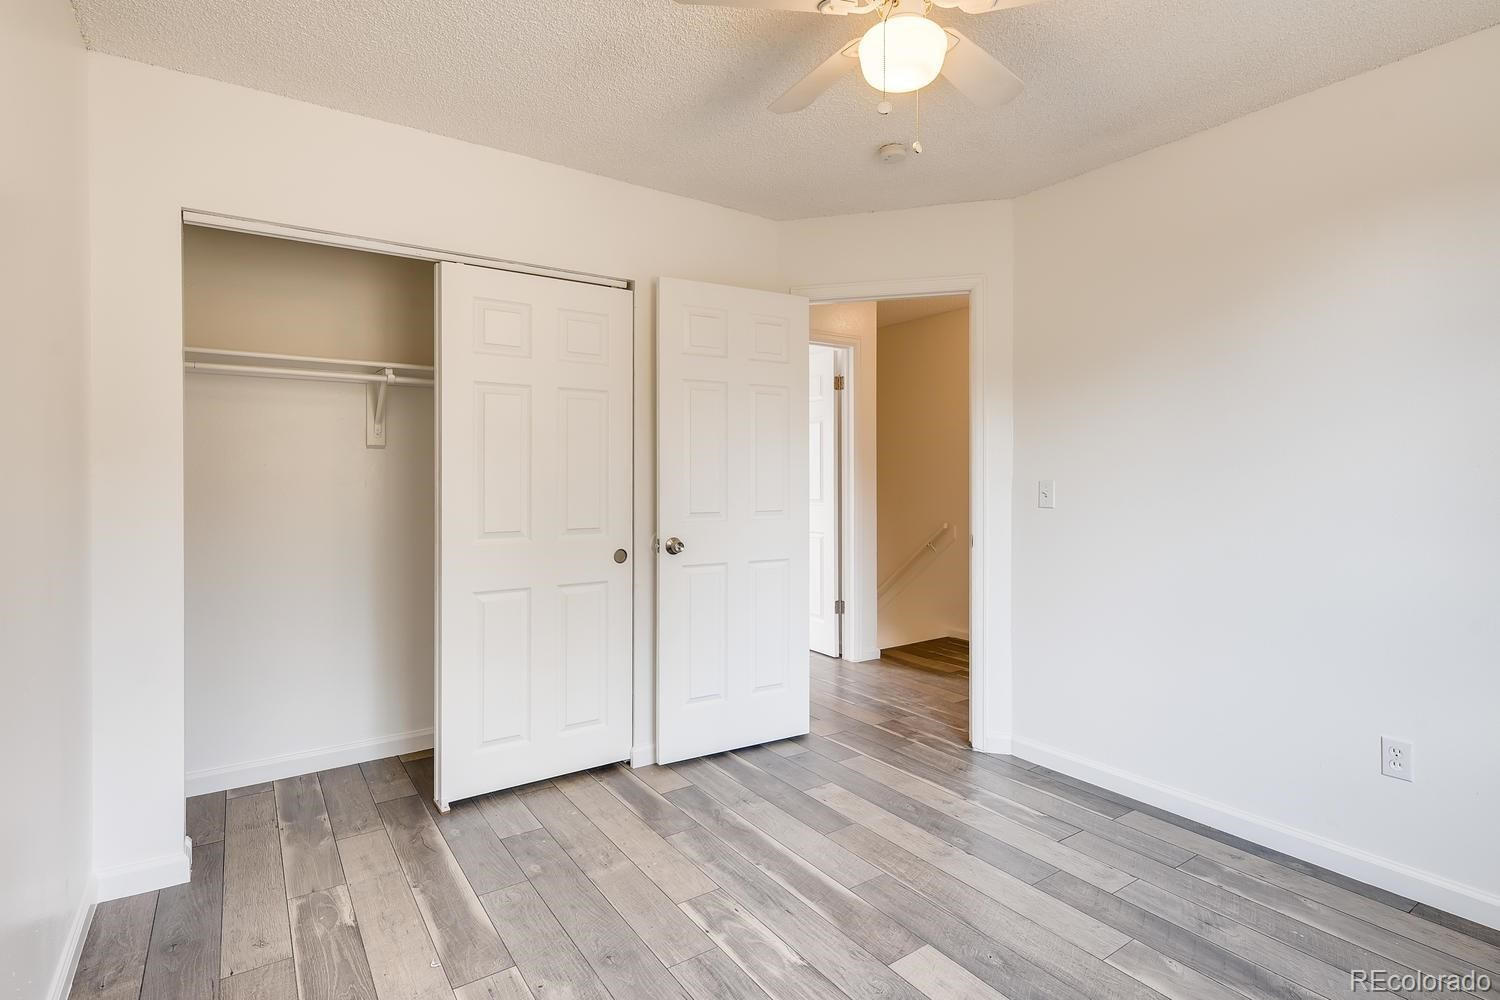 MLS# 3378738 - 14 - 4670 W Nevada Place ##103, Denver, CO 80219